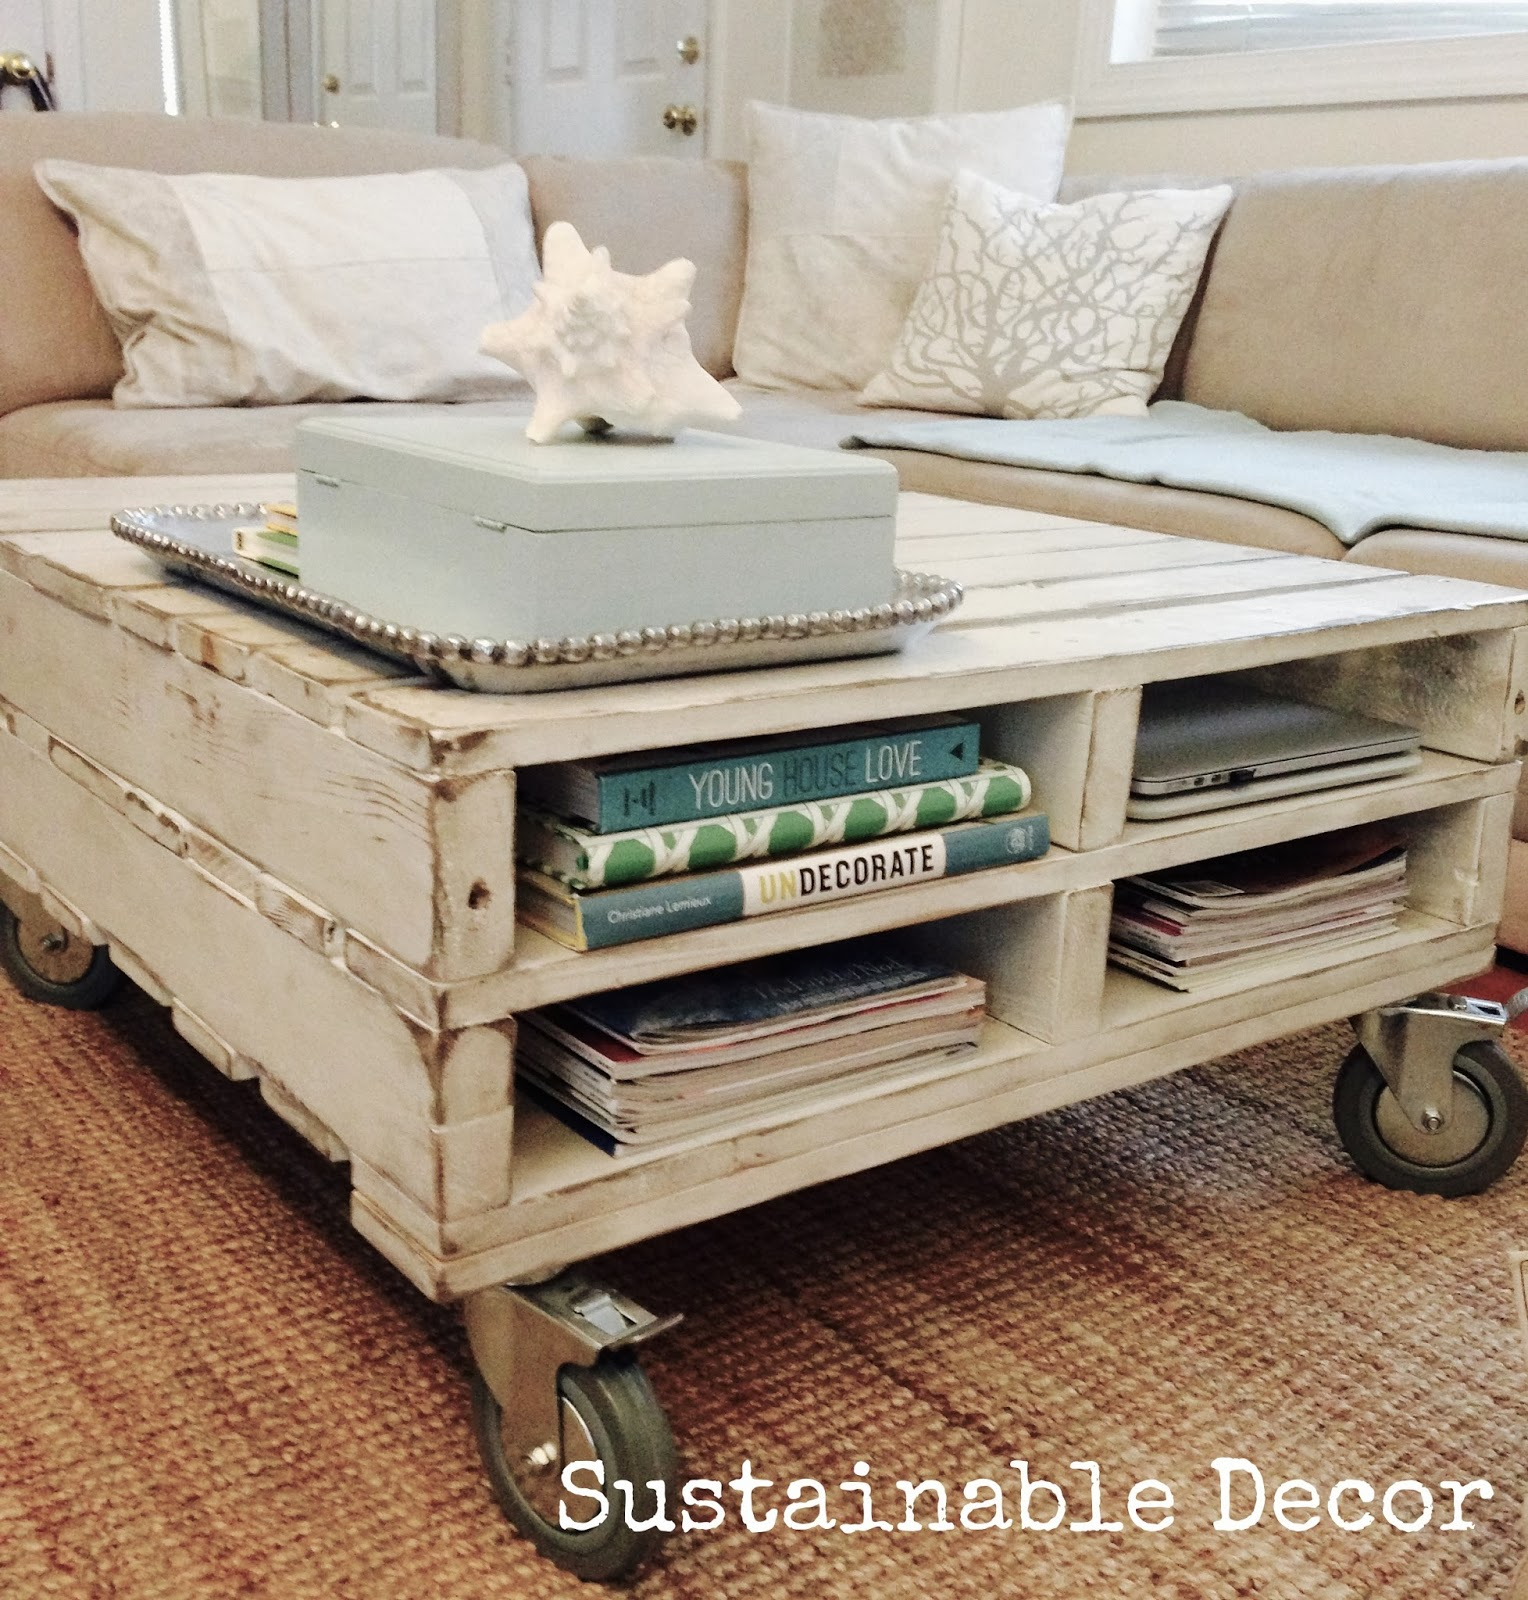 Thrift Home Decor Sustainable Decor Upcycled Pallet Coffee Table